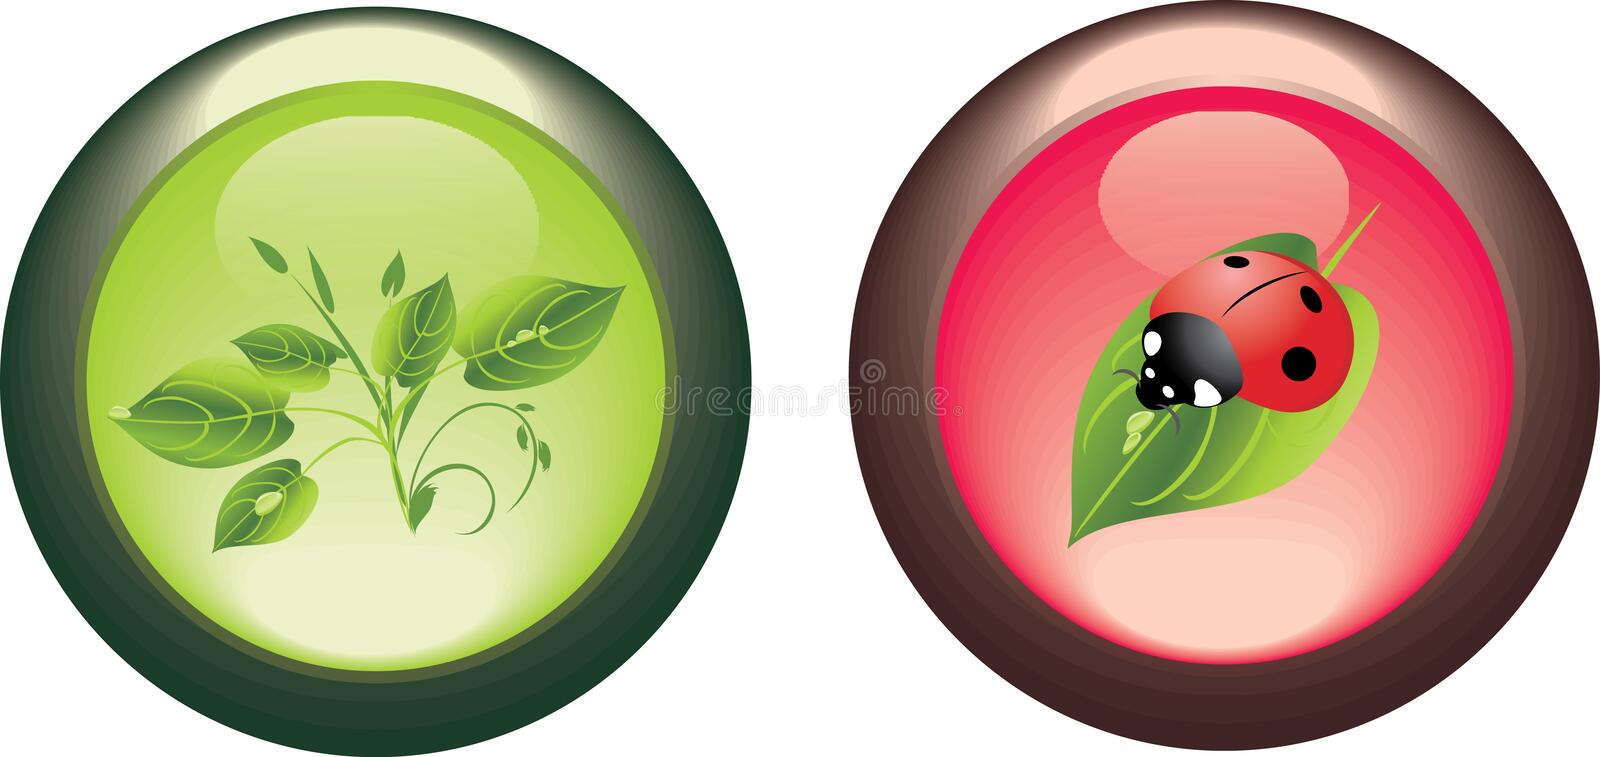 Download Two Isolated Buttons. Spring Concept Stock Vector - Image: 12125571